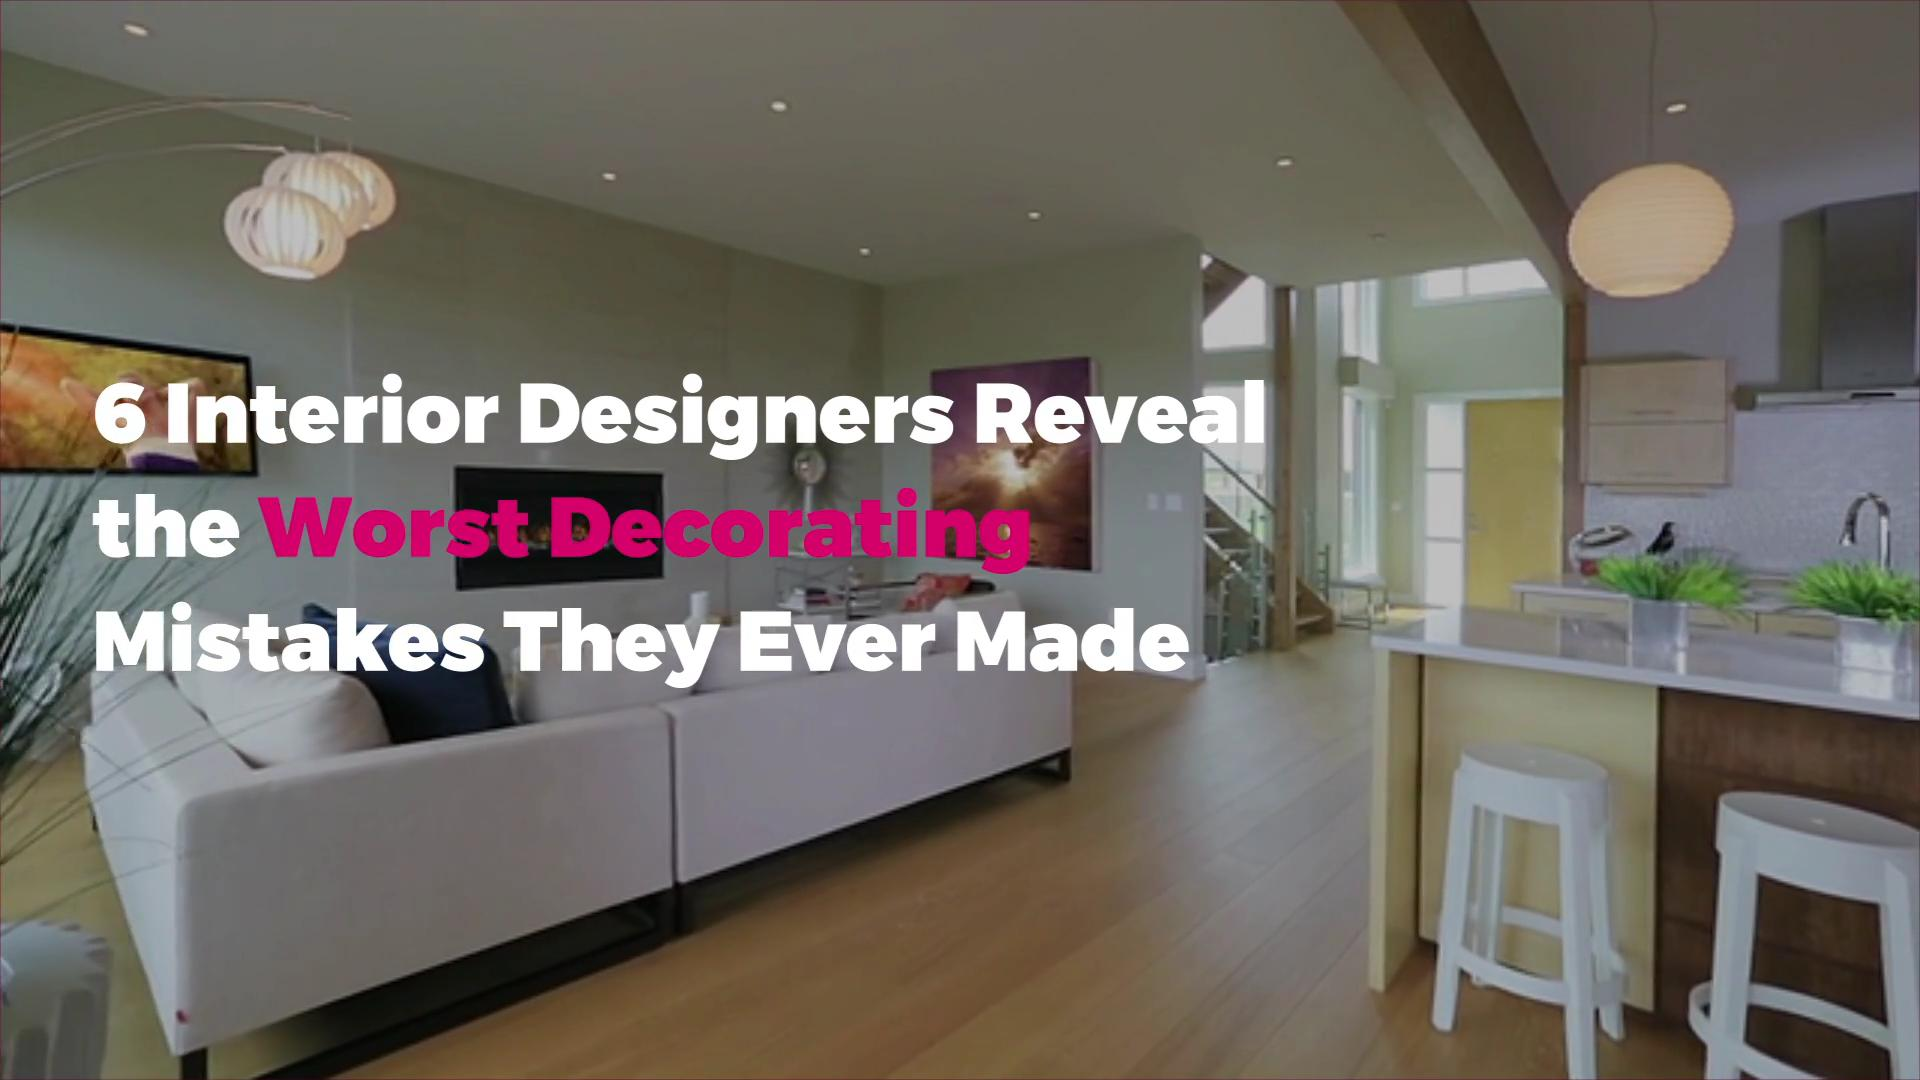 6 Interior Designers Reveal The Worst Design Mistake They